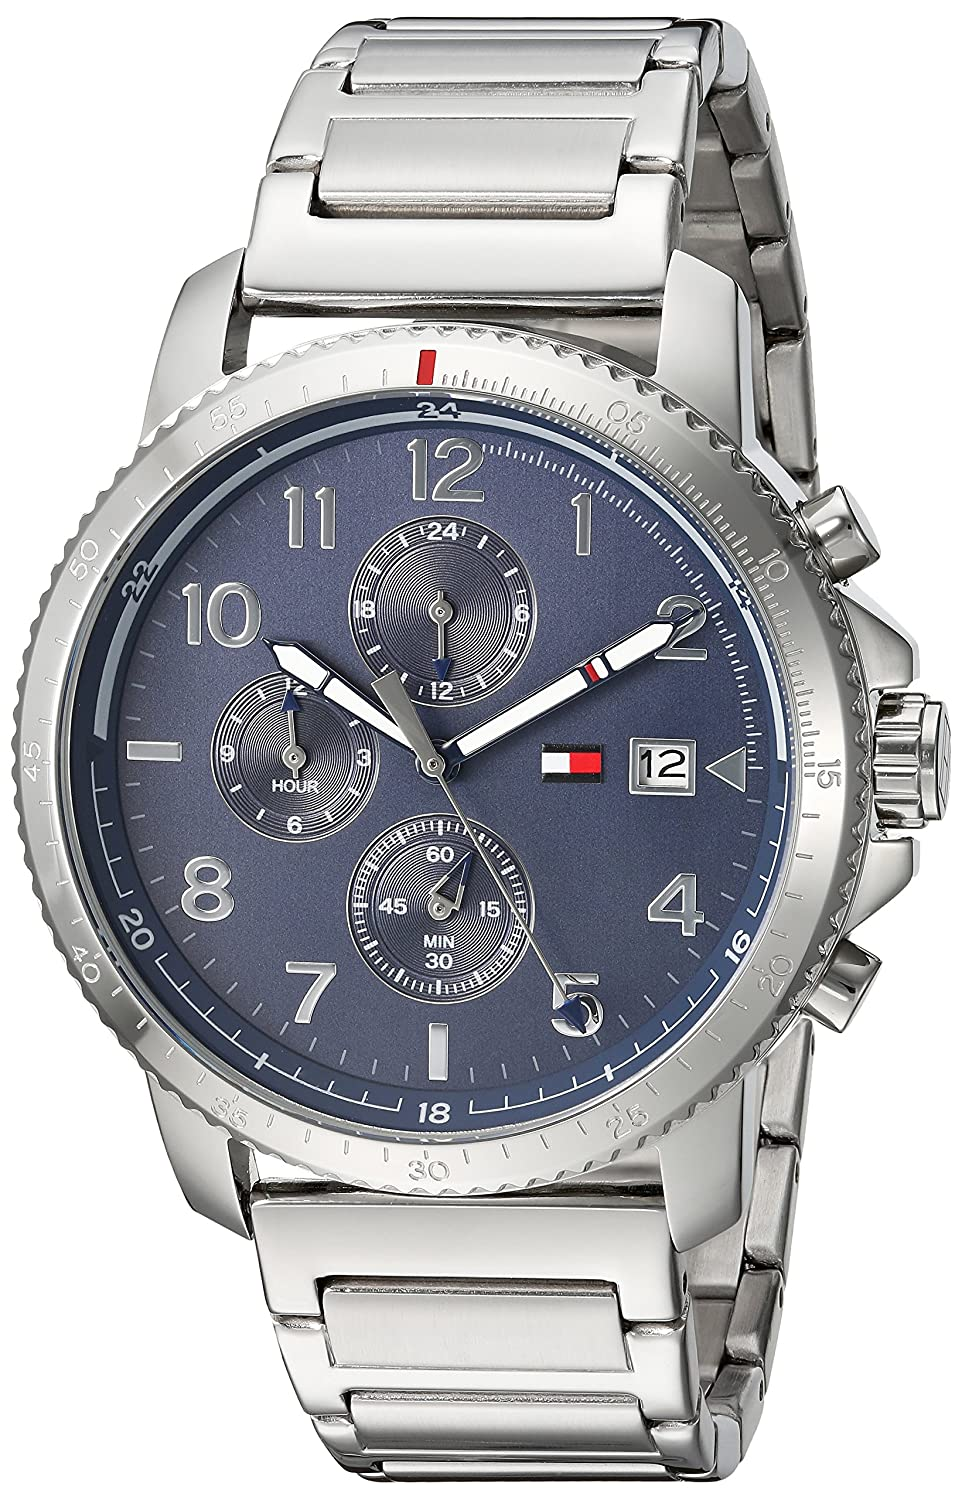 Tommy Hilfiger Men Casual Sport Quartz Watch with StainlessSteel Strap Silver 08 Model 1791360